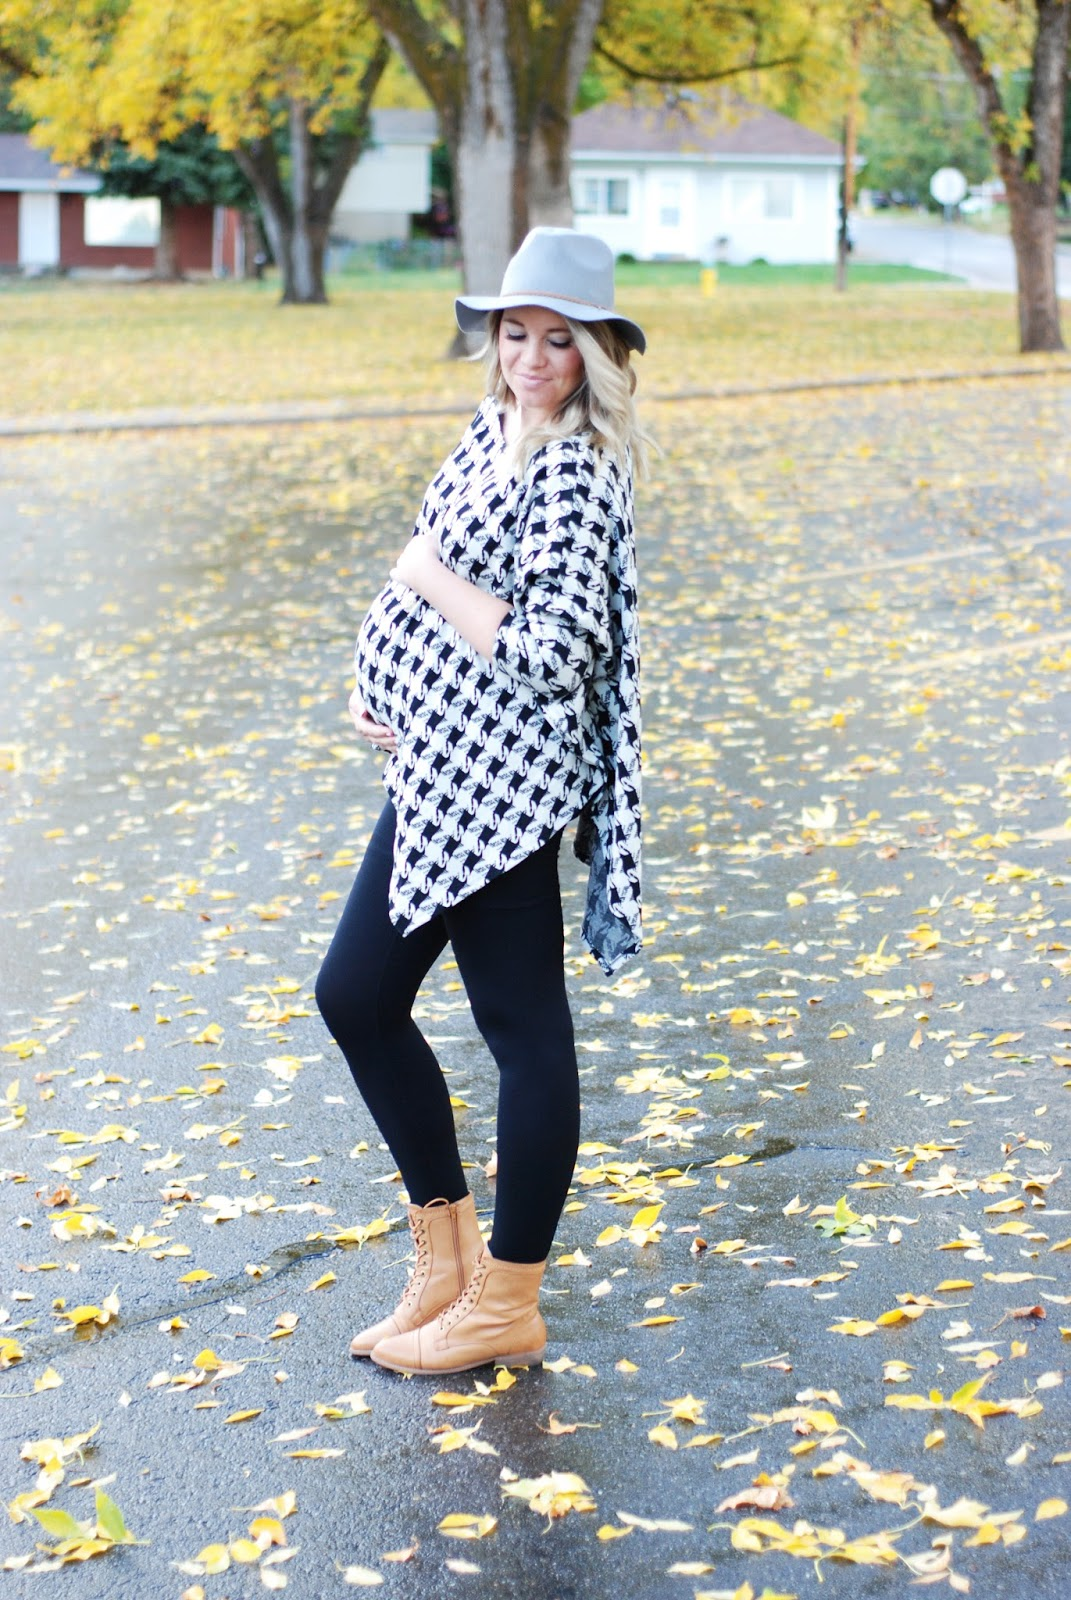 Utah Fashion Blogger, Pregnant Style, Maternity Outfit, Fall Outfit